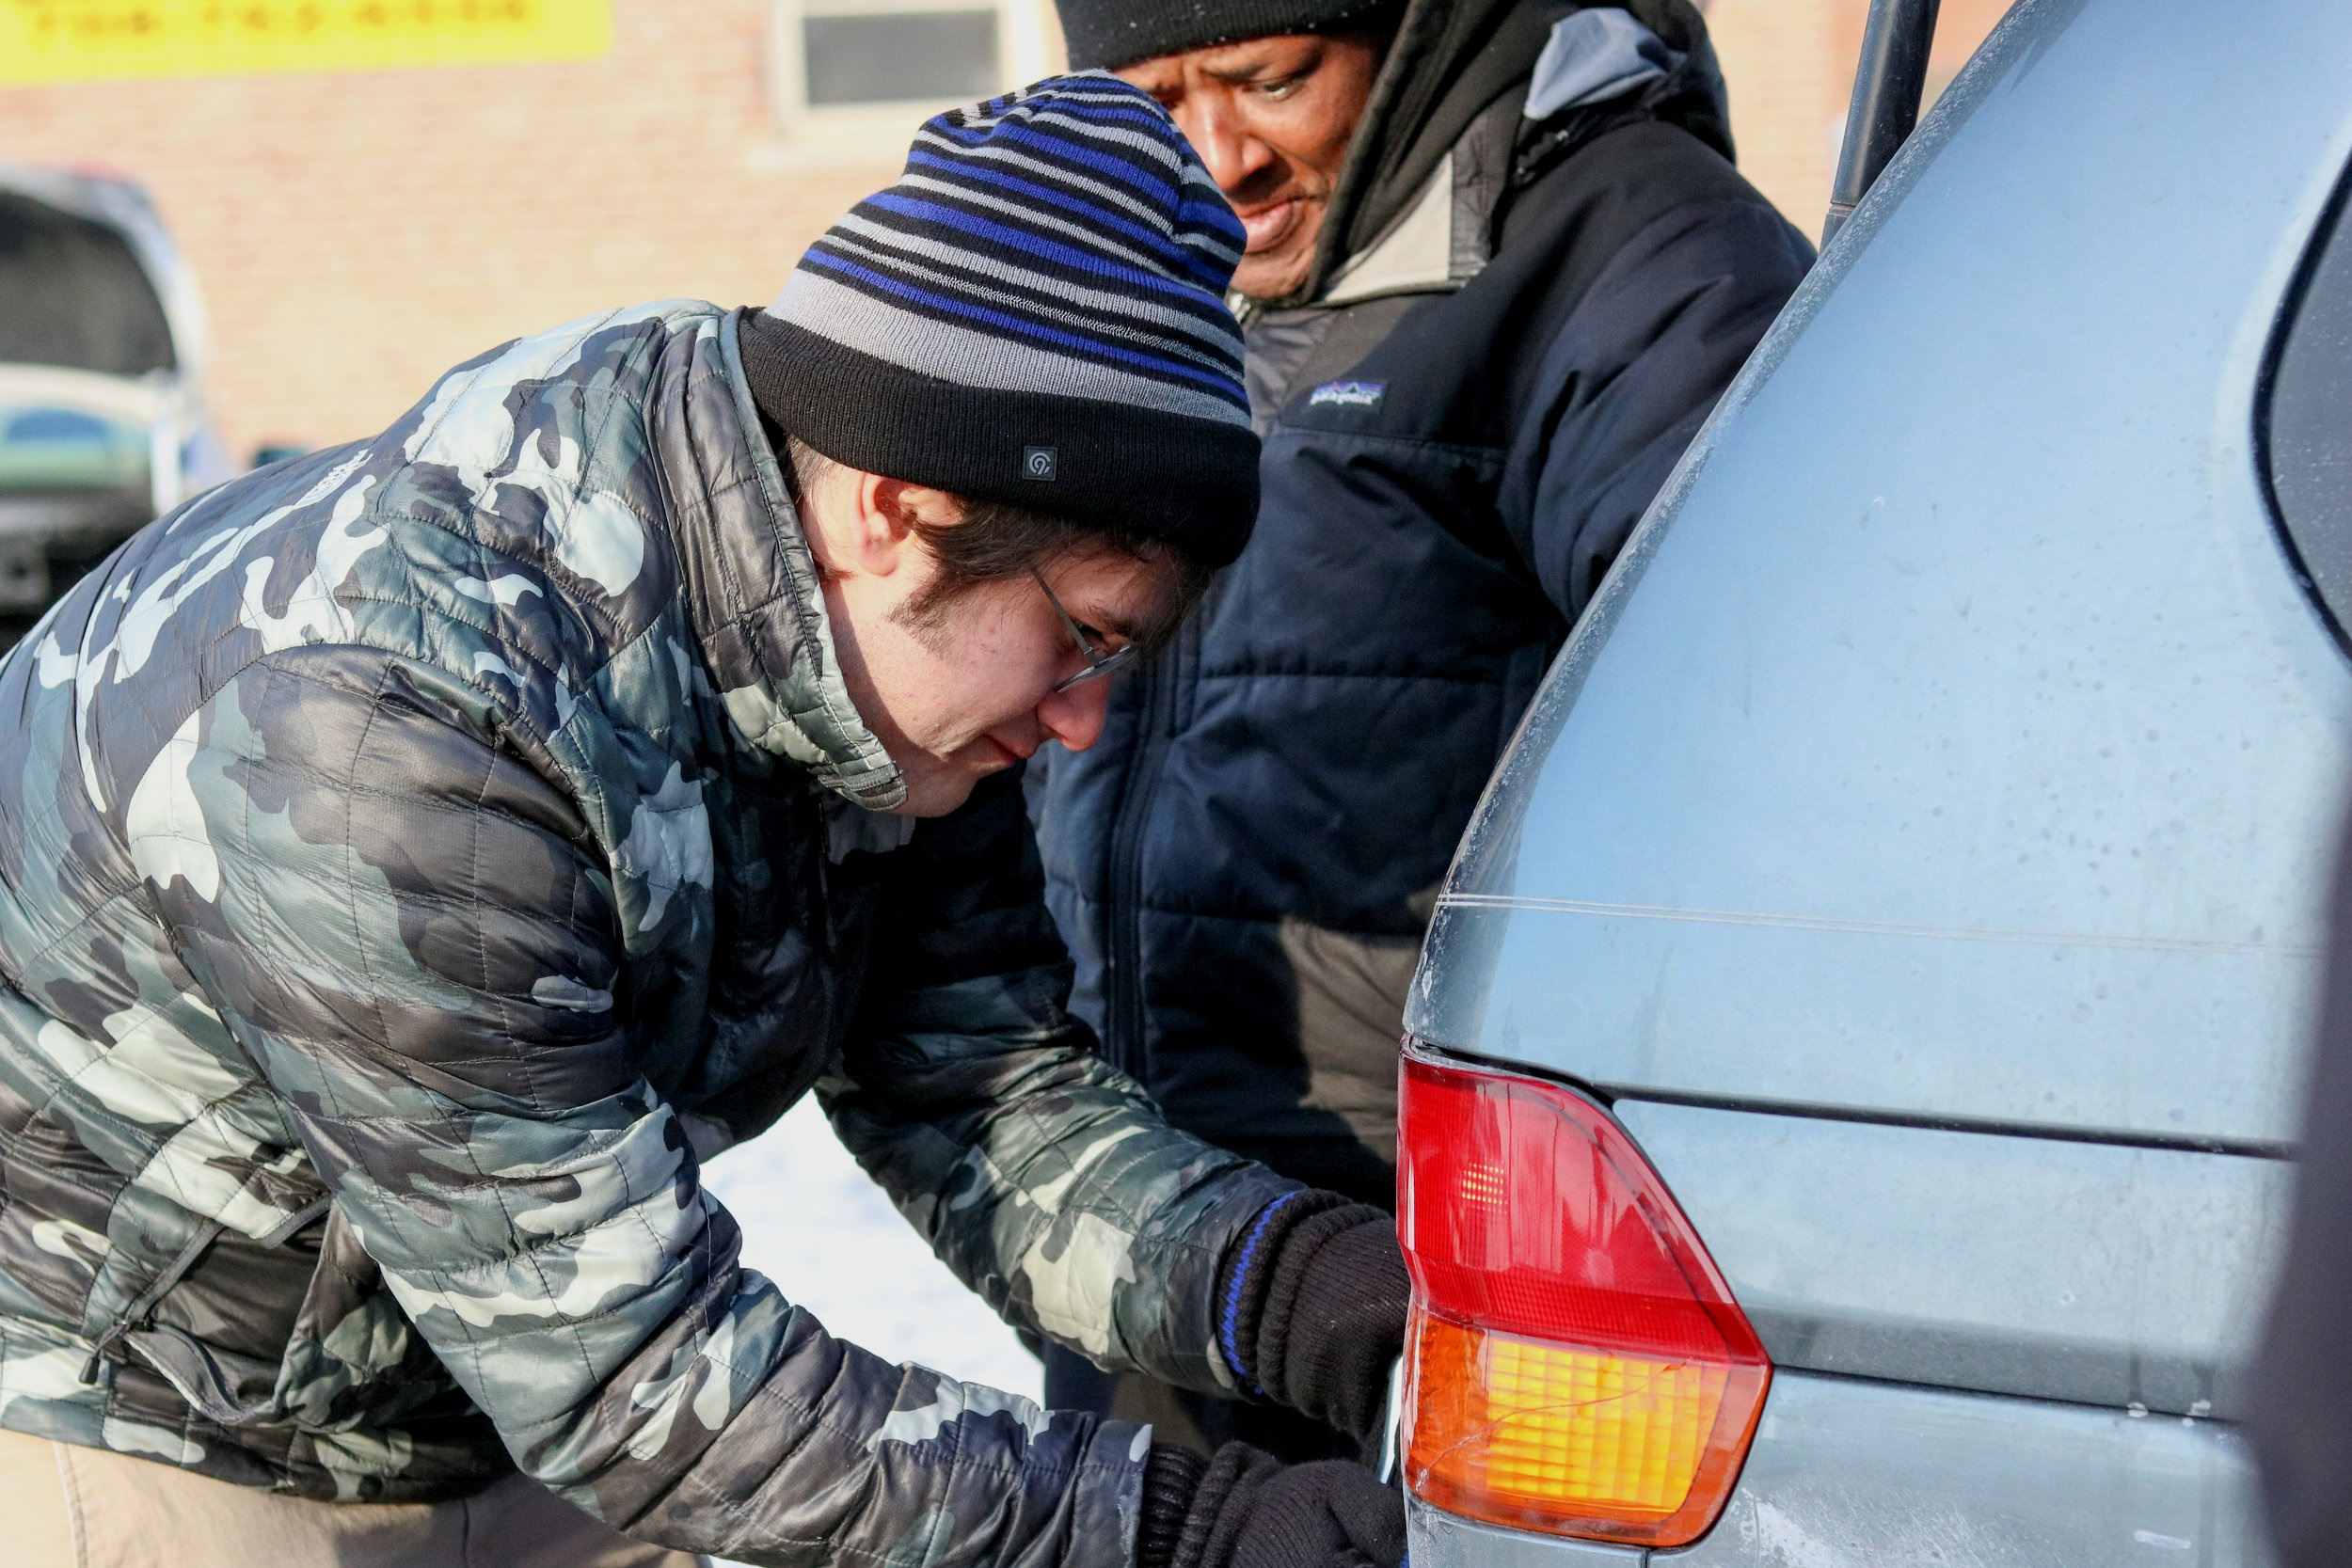 For three hours, volunteers withstood frigid temperatures to help make various repairs on community members vehicles.